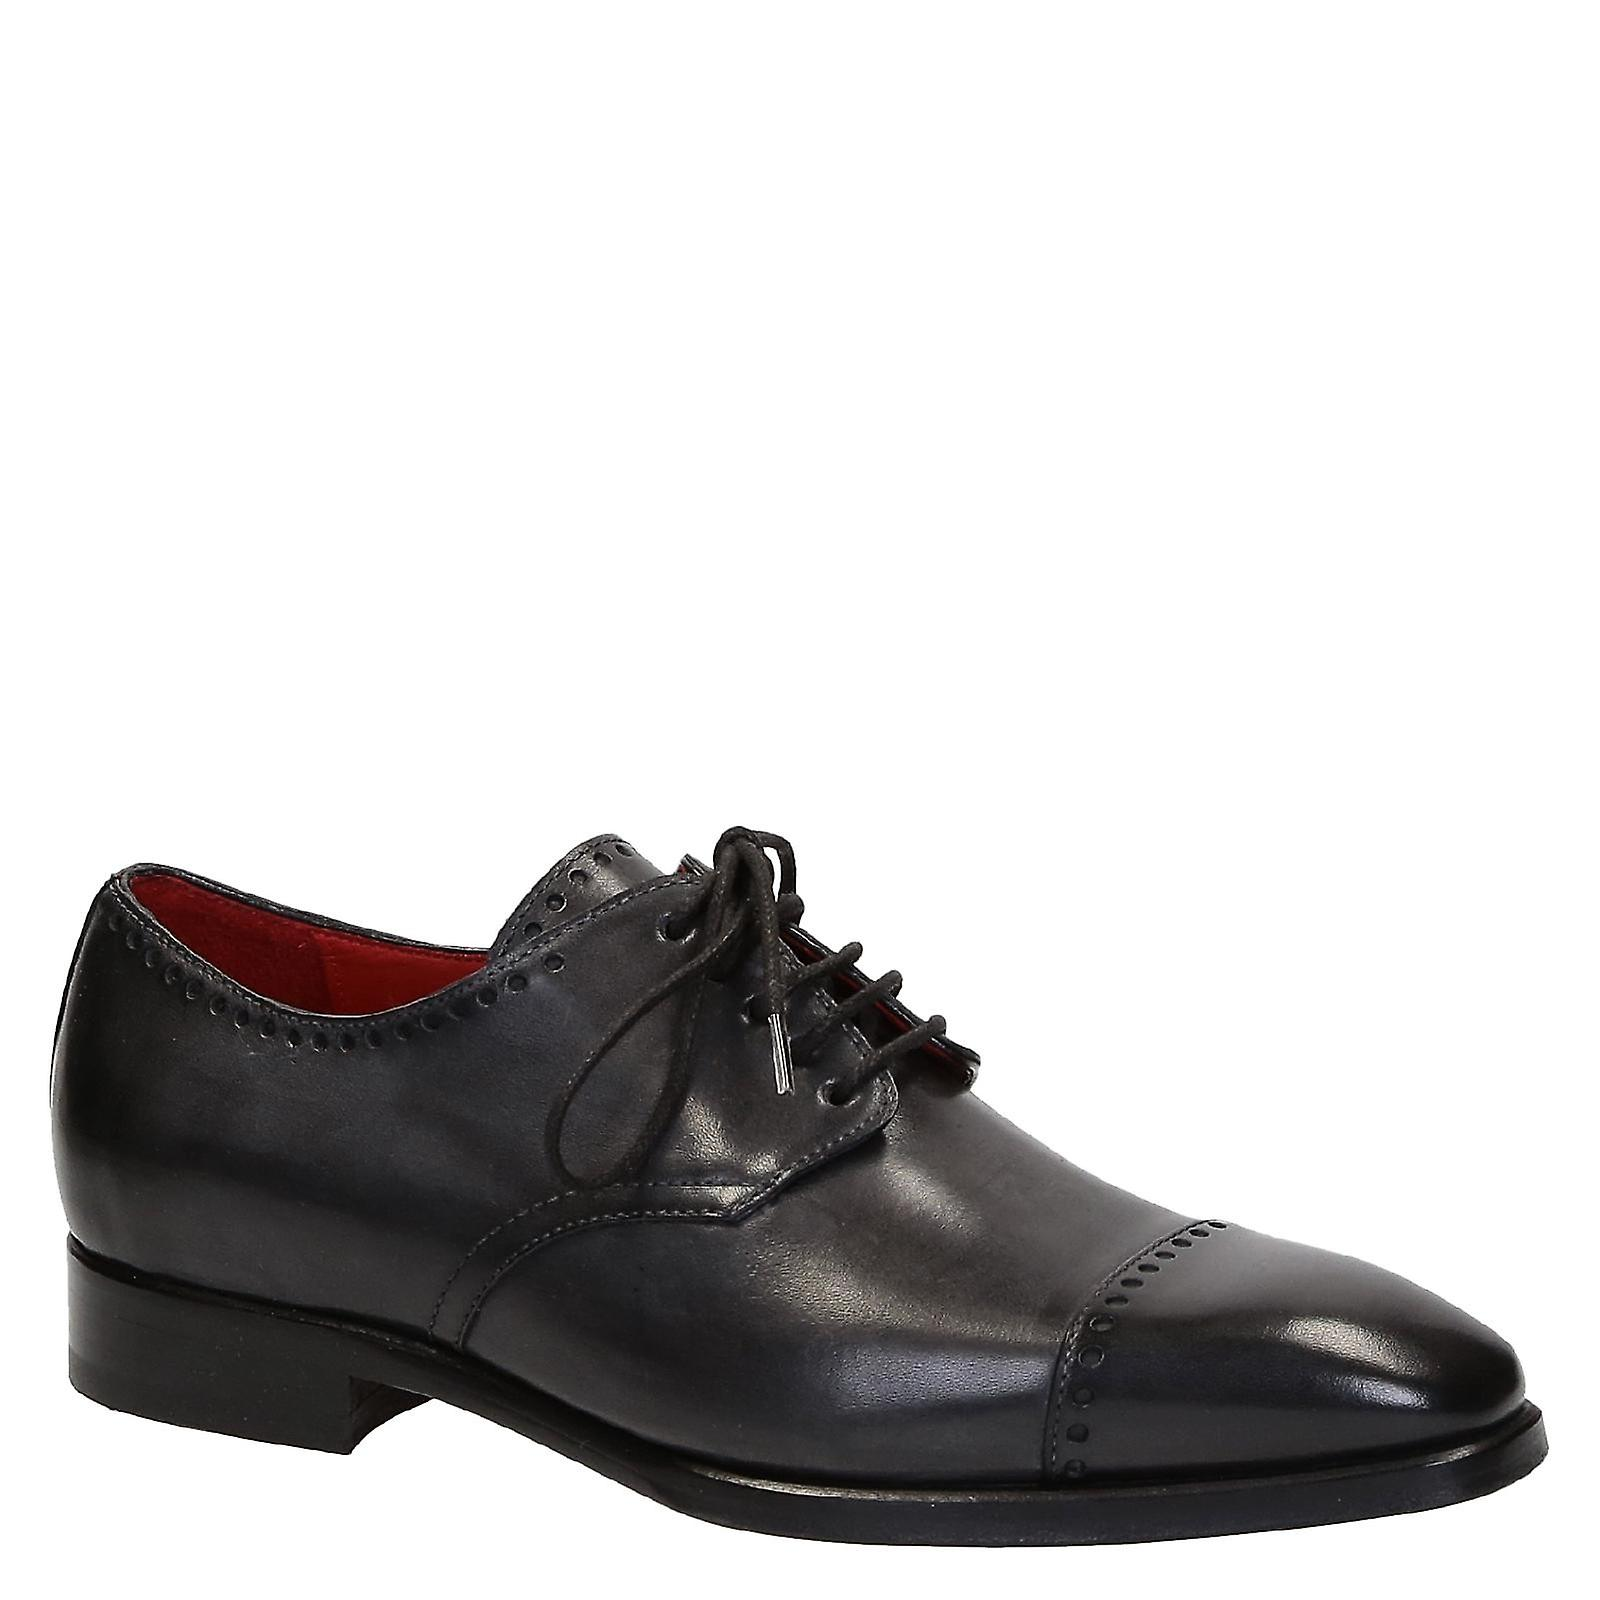 Handmade derby shoes for men in dark grey leather